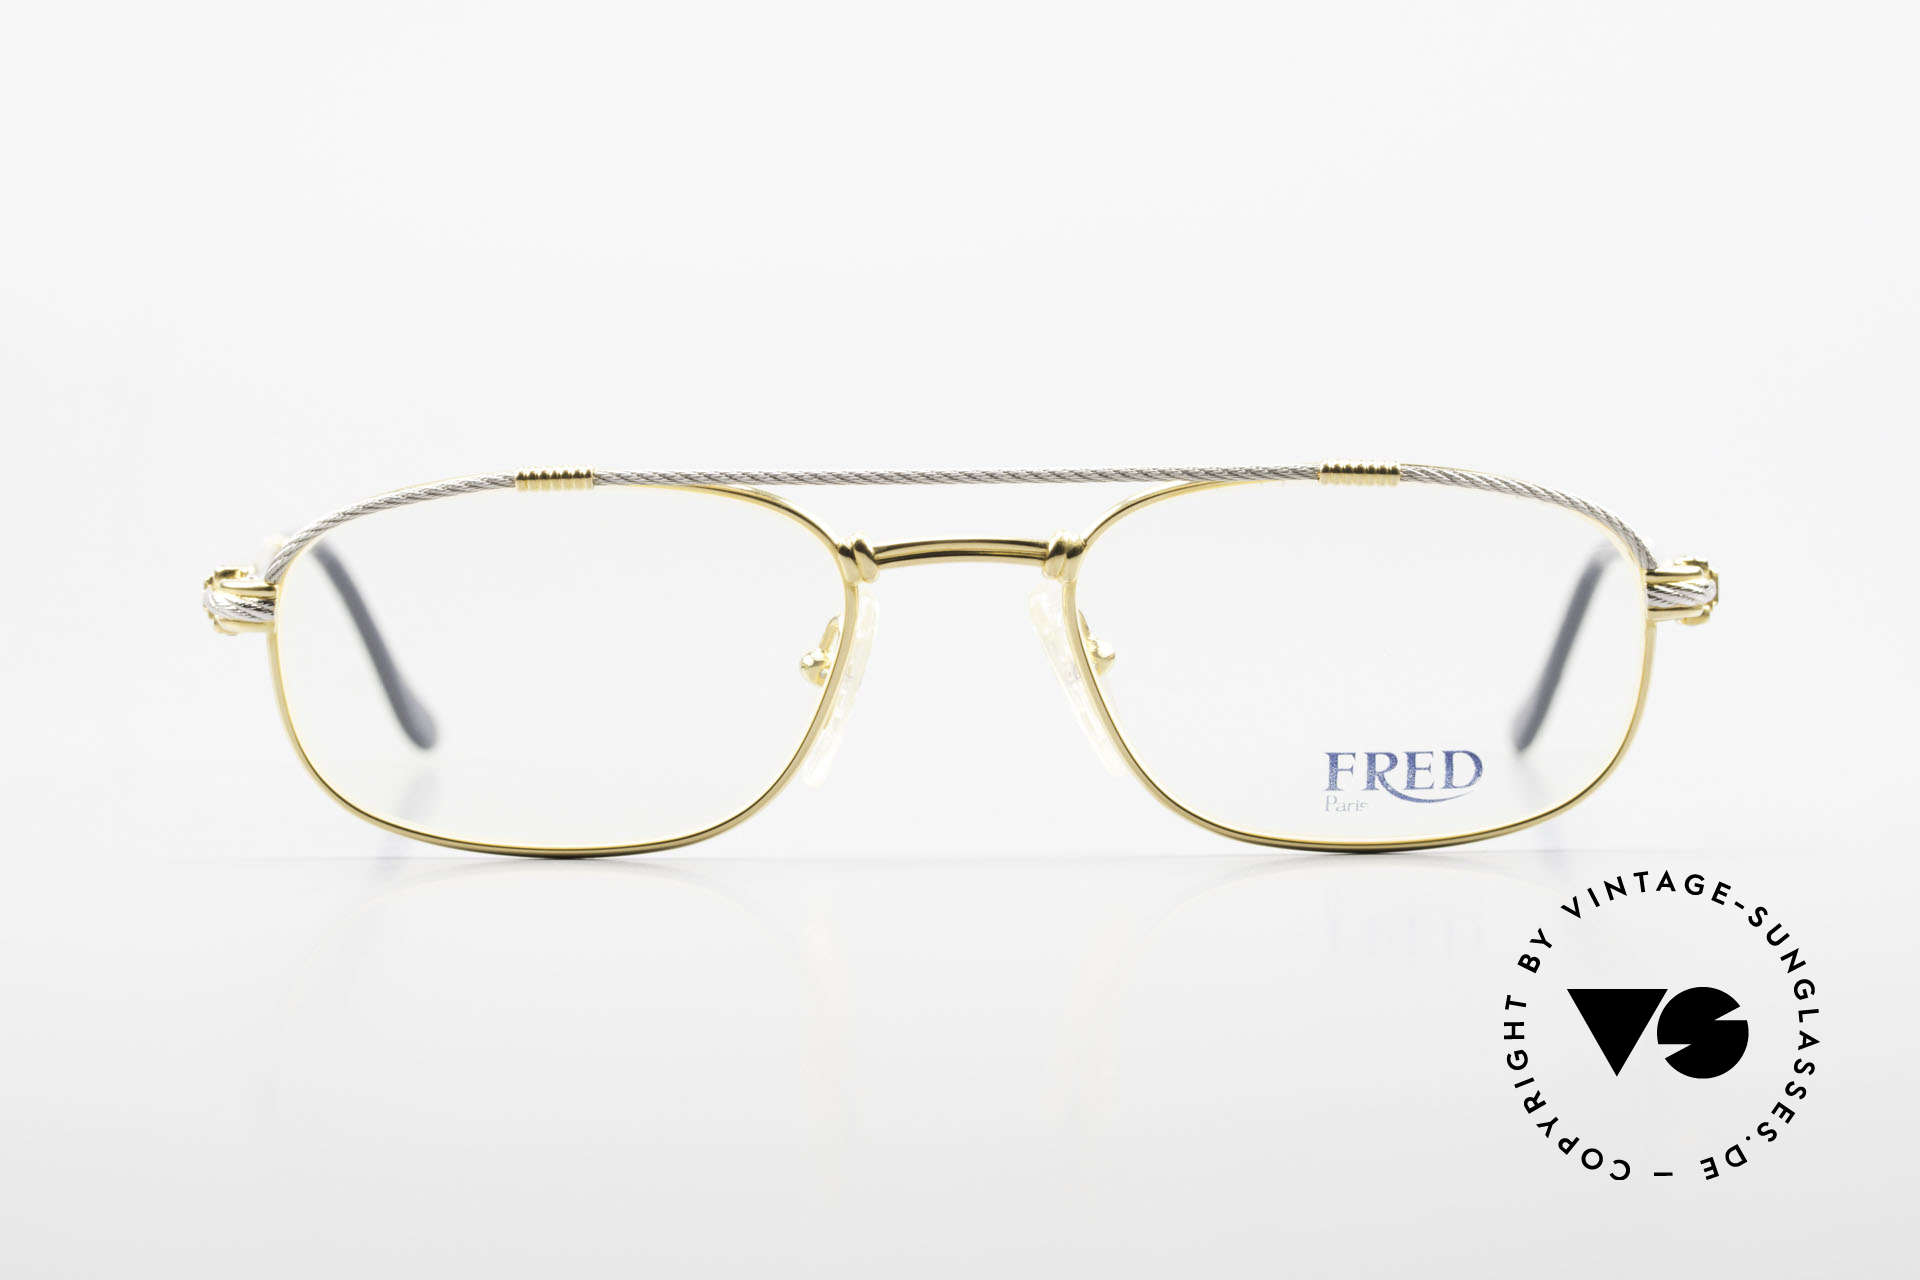 Fred Fregate Luxury Sailing Glasses S Frame, vintage eyeglass-frame by Fred, Paris from the 1980s, Made for Men